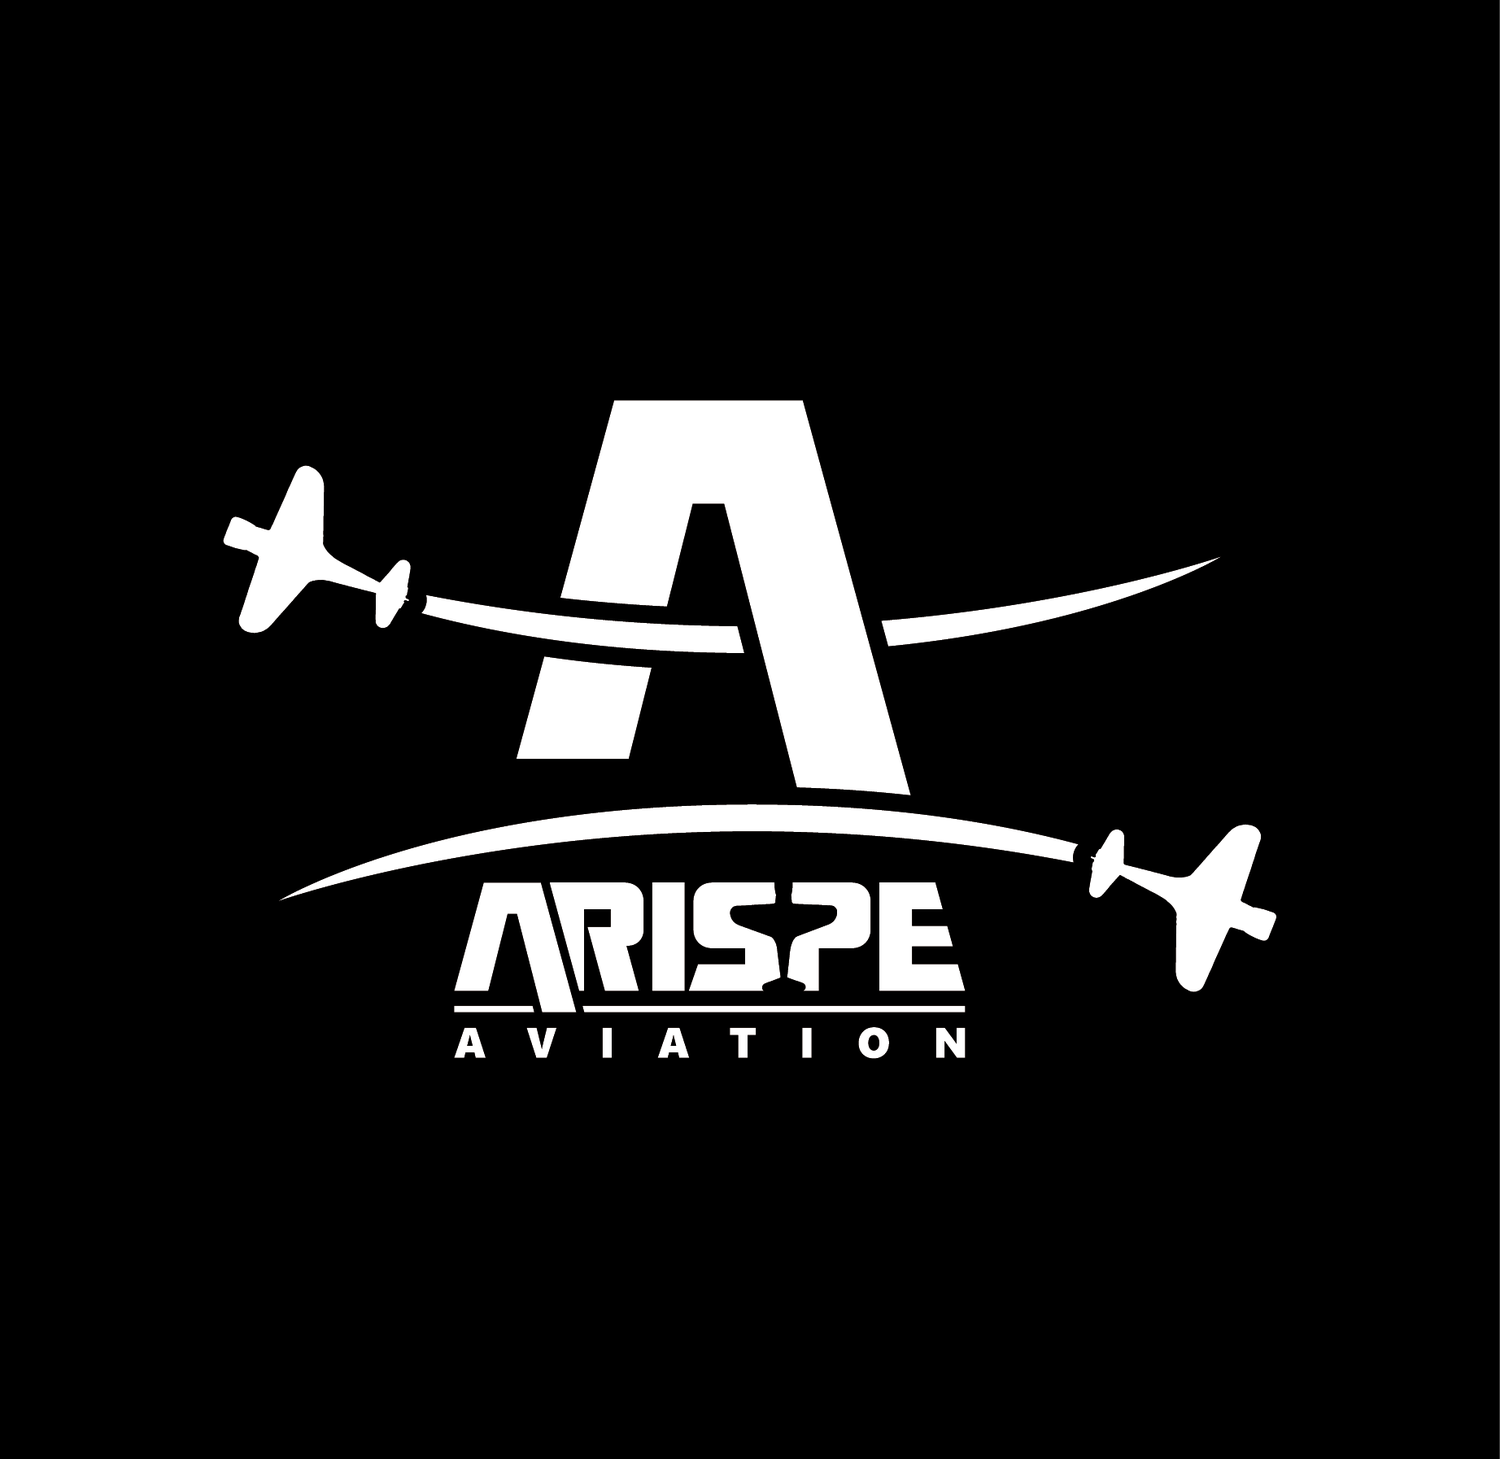 Arispe Aviation